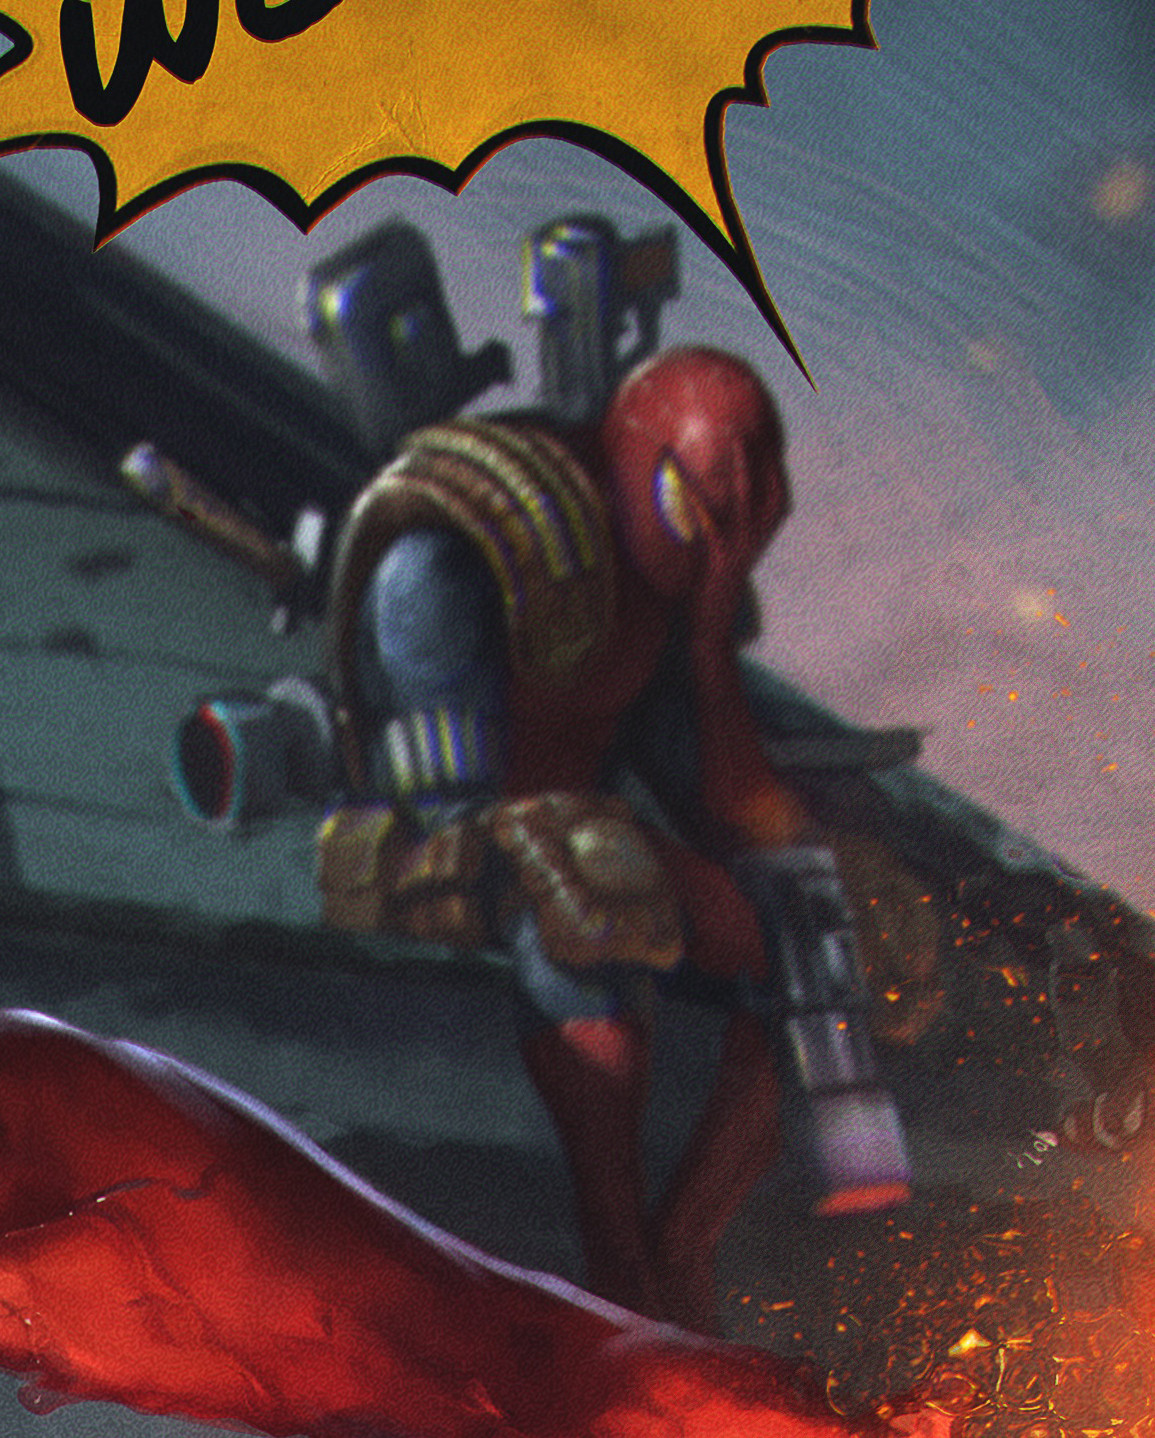 Denys tsiperko deadpool evo 2 sep 10 crop 1